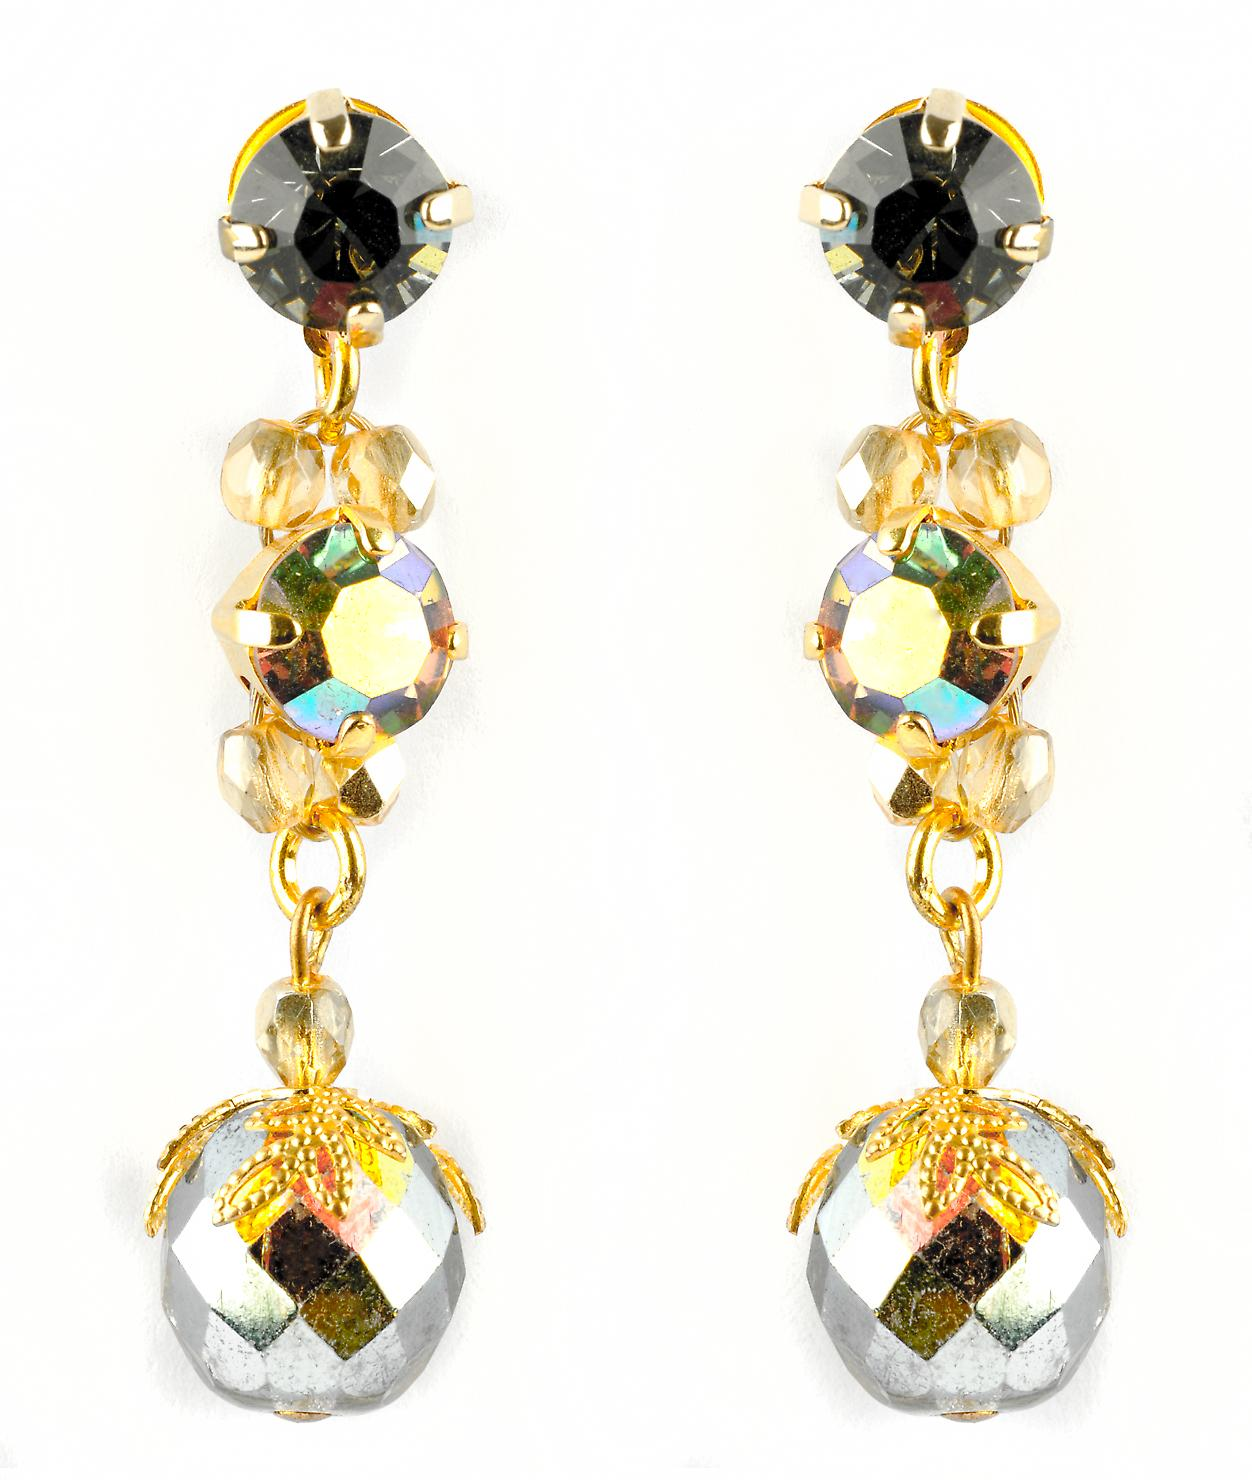 Waooh - jewelry - WJ0684 - earrings with Rhinestone Swarovski Silver Gold and black - frame color gold